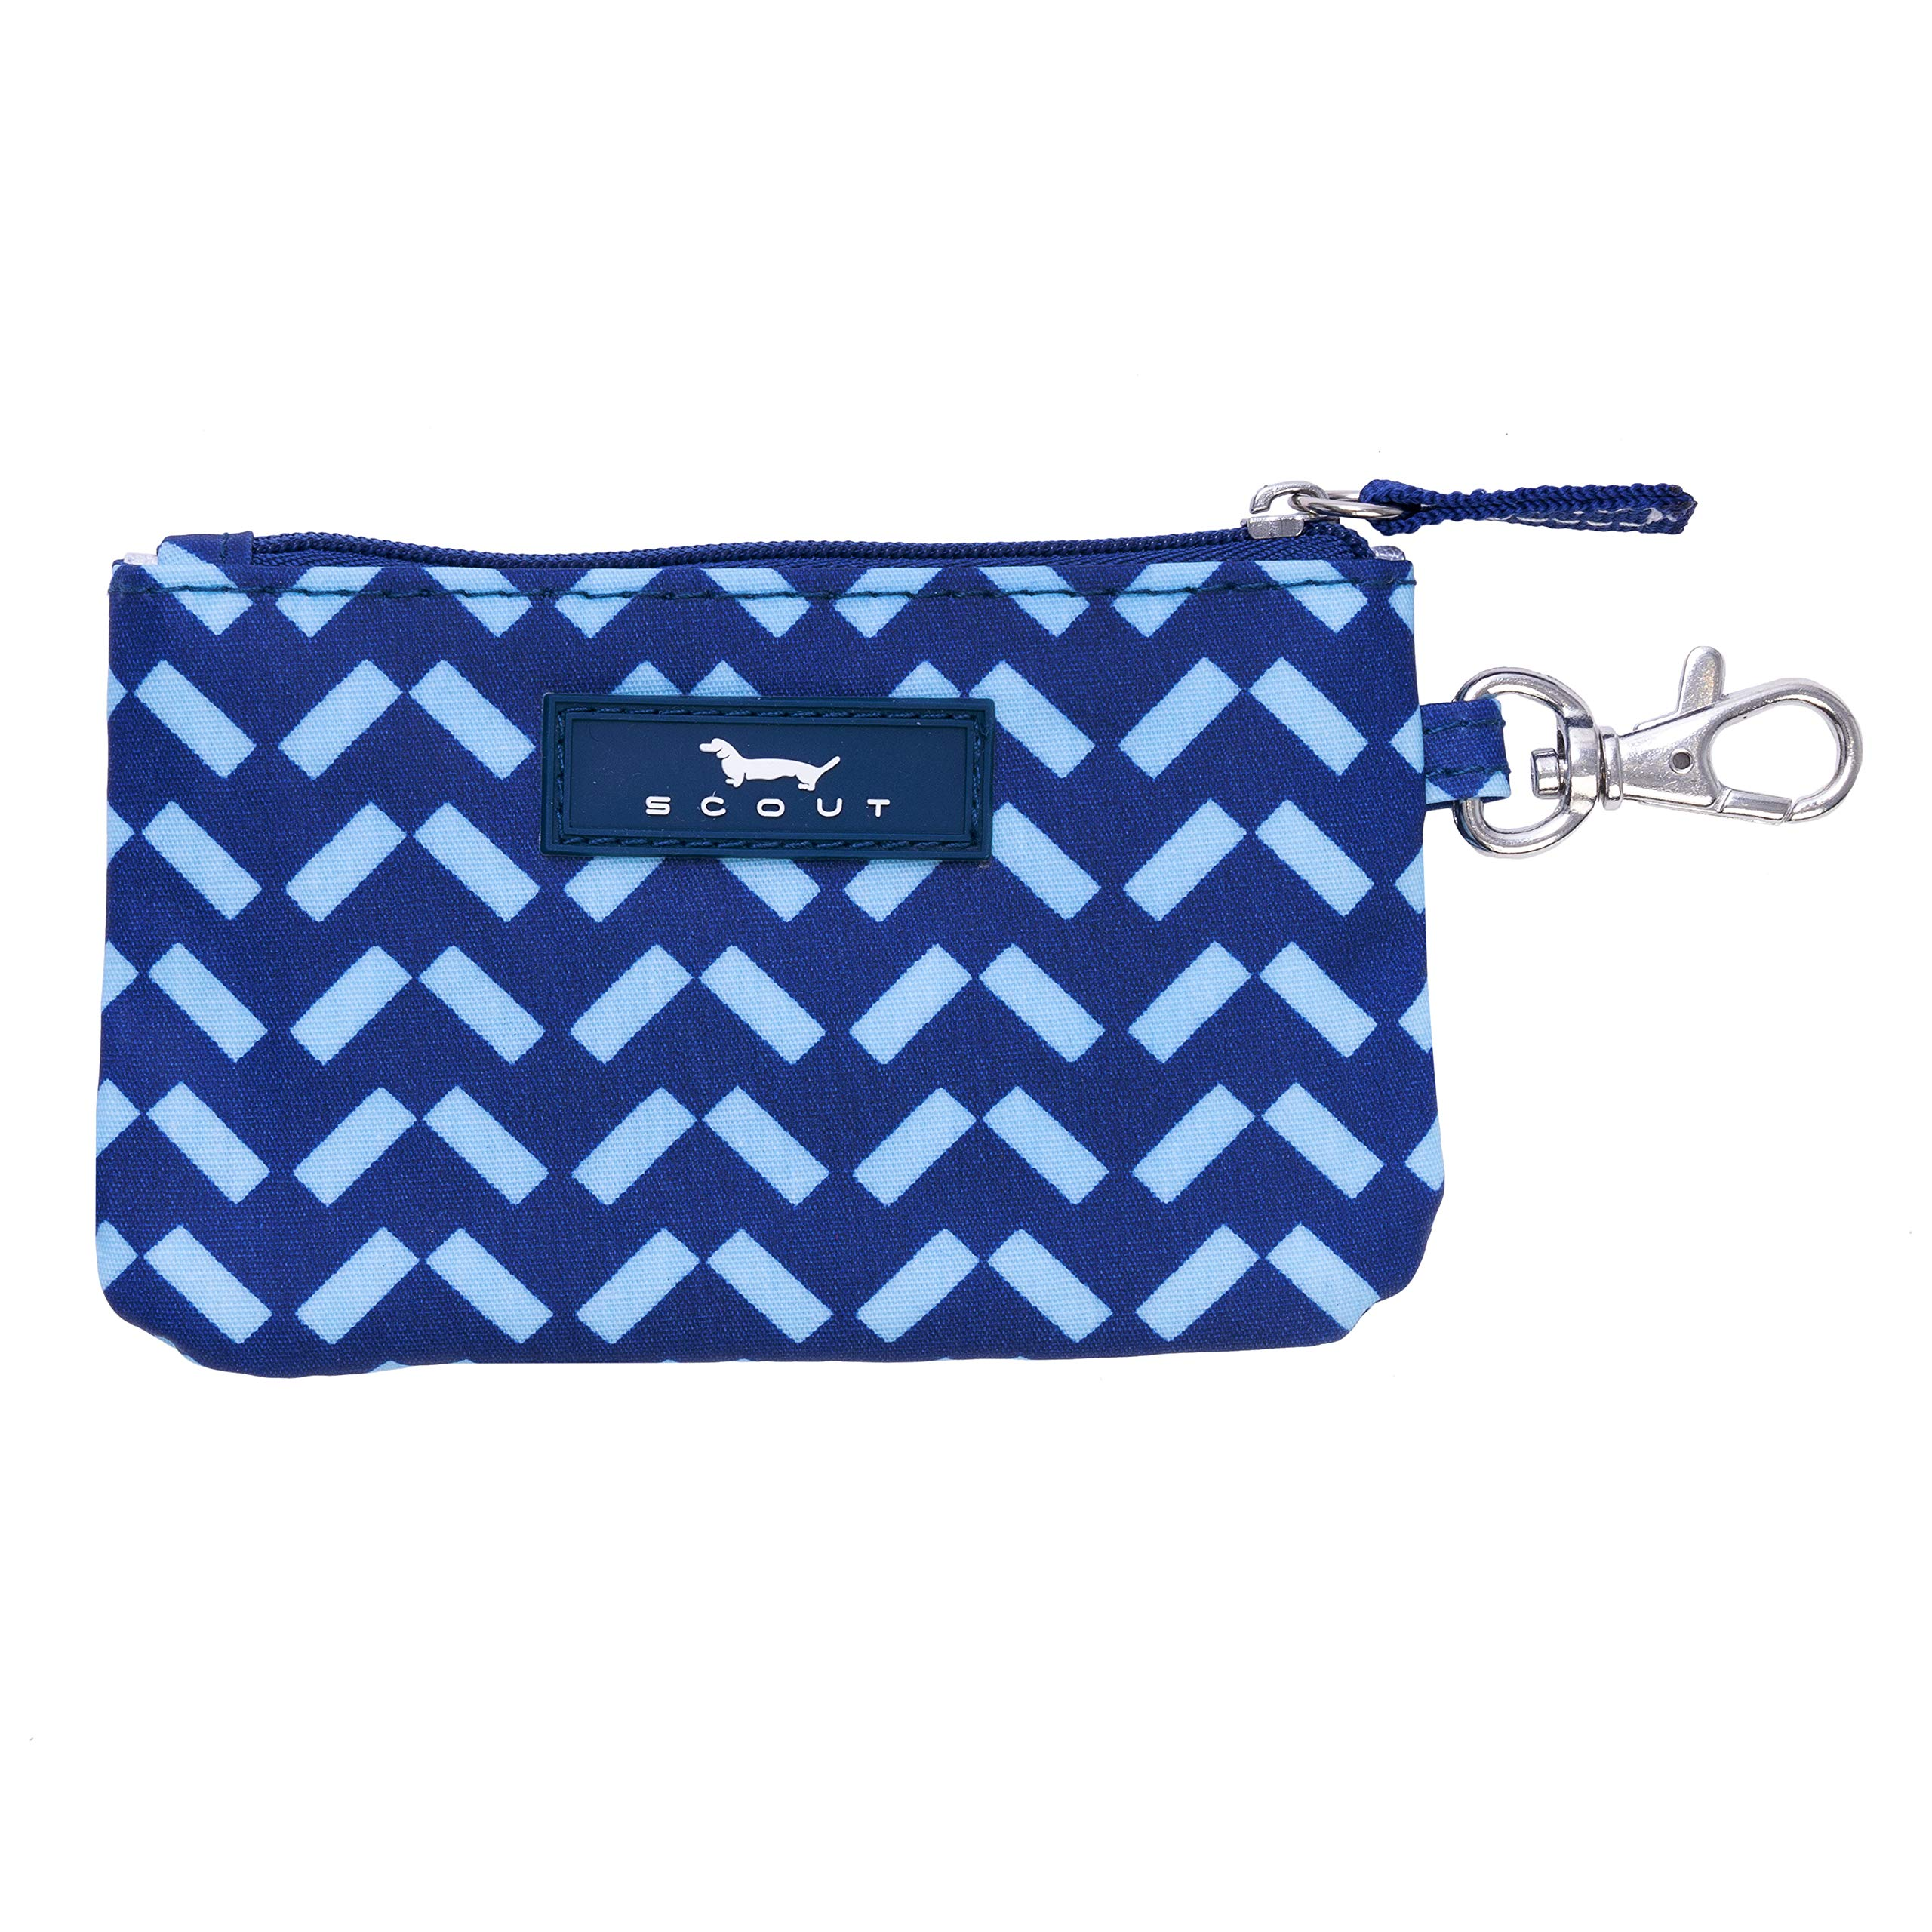 SCOUT IDKase Card Holder or Wallet, ID Holder Window, Key Clasp, Water Resistant, Zips Closed, Winging It